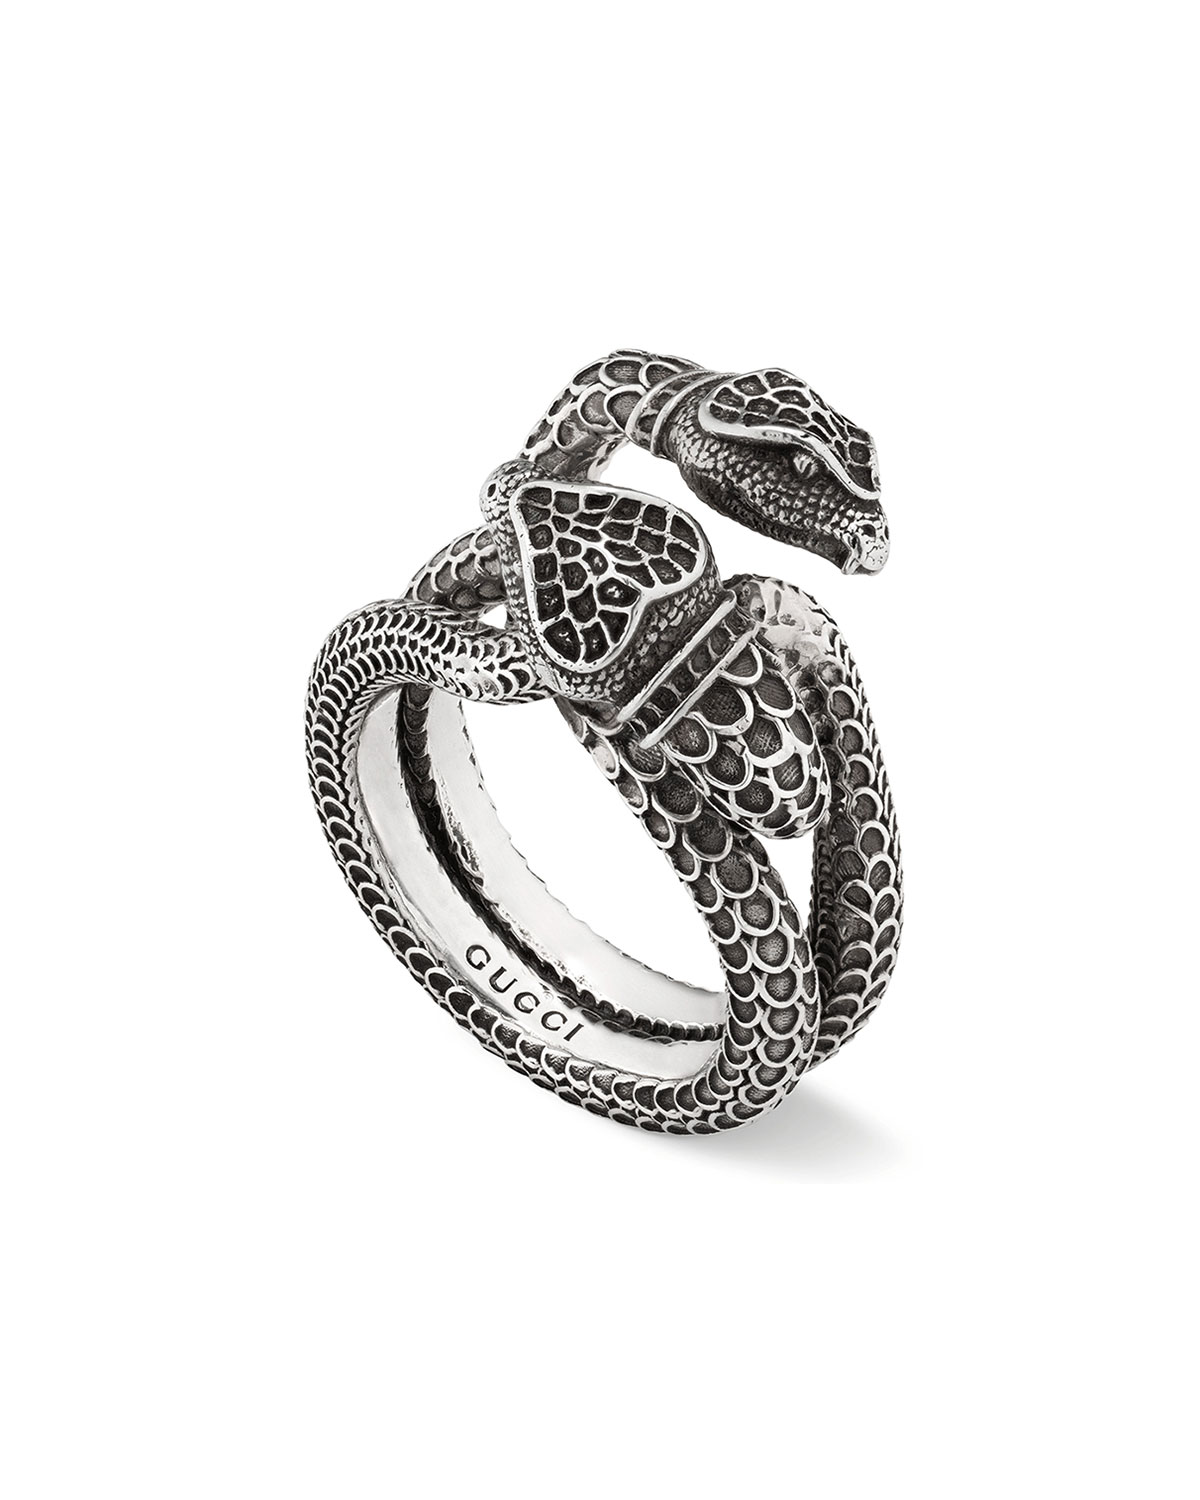 1fbd5d295ca4d2 GucciMen's Engraved Snake Ring, Size 10.5. Heart ring with Gucci trademark. Gucci  GUCCI ...